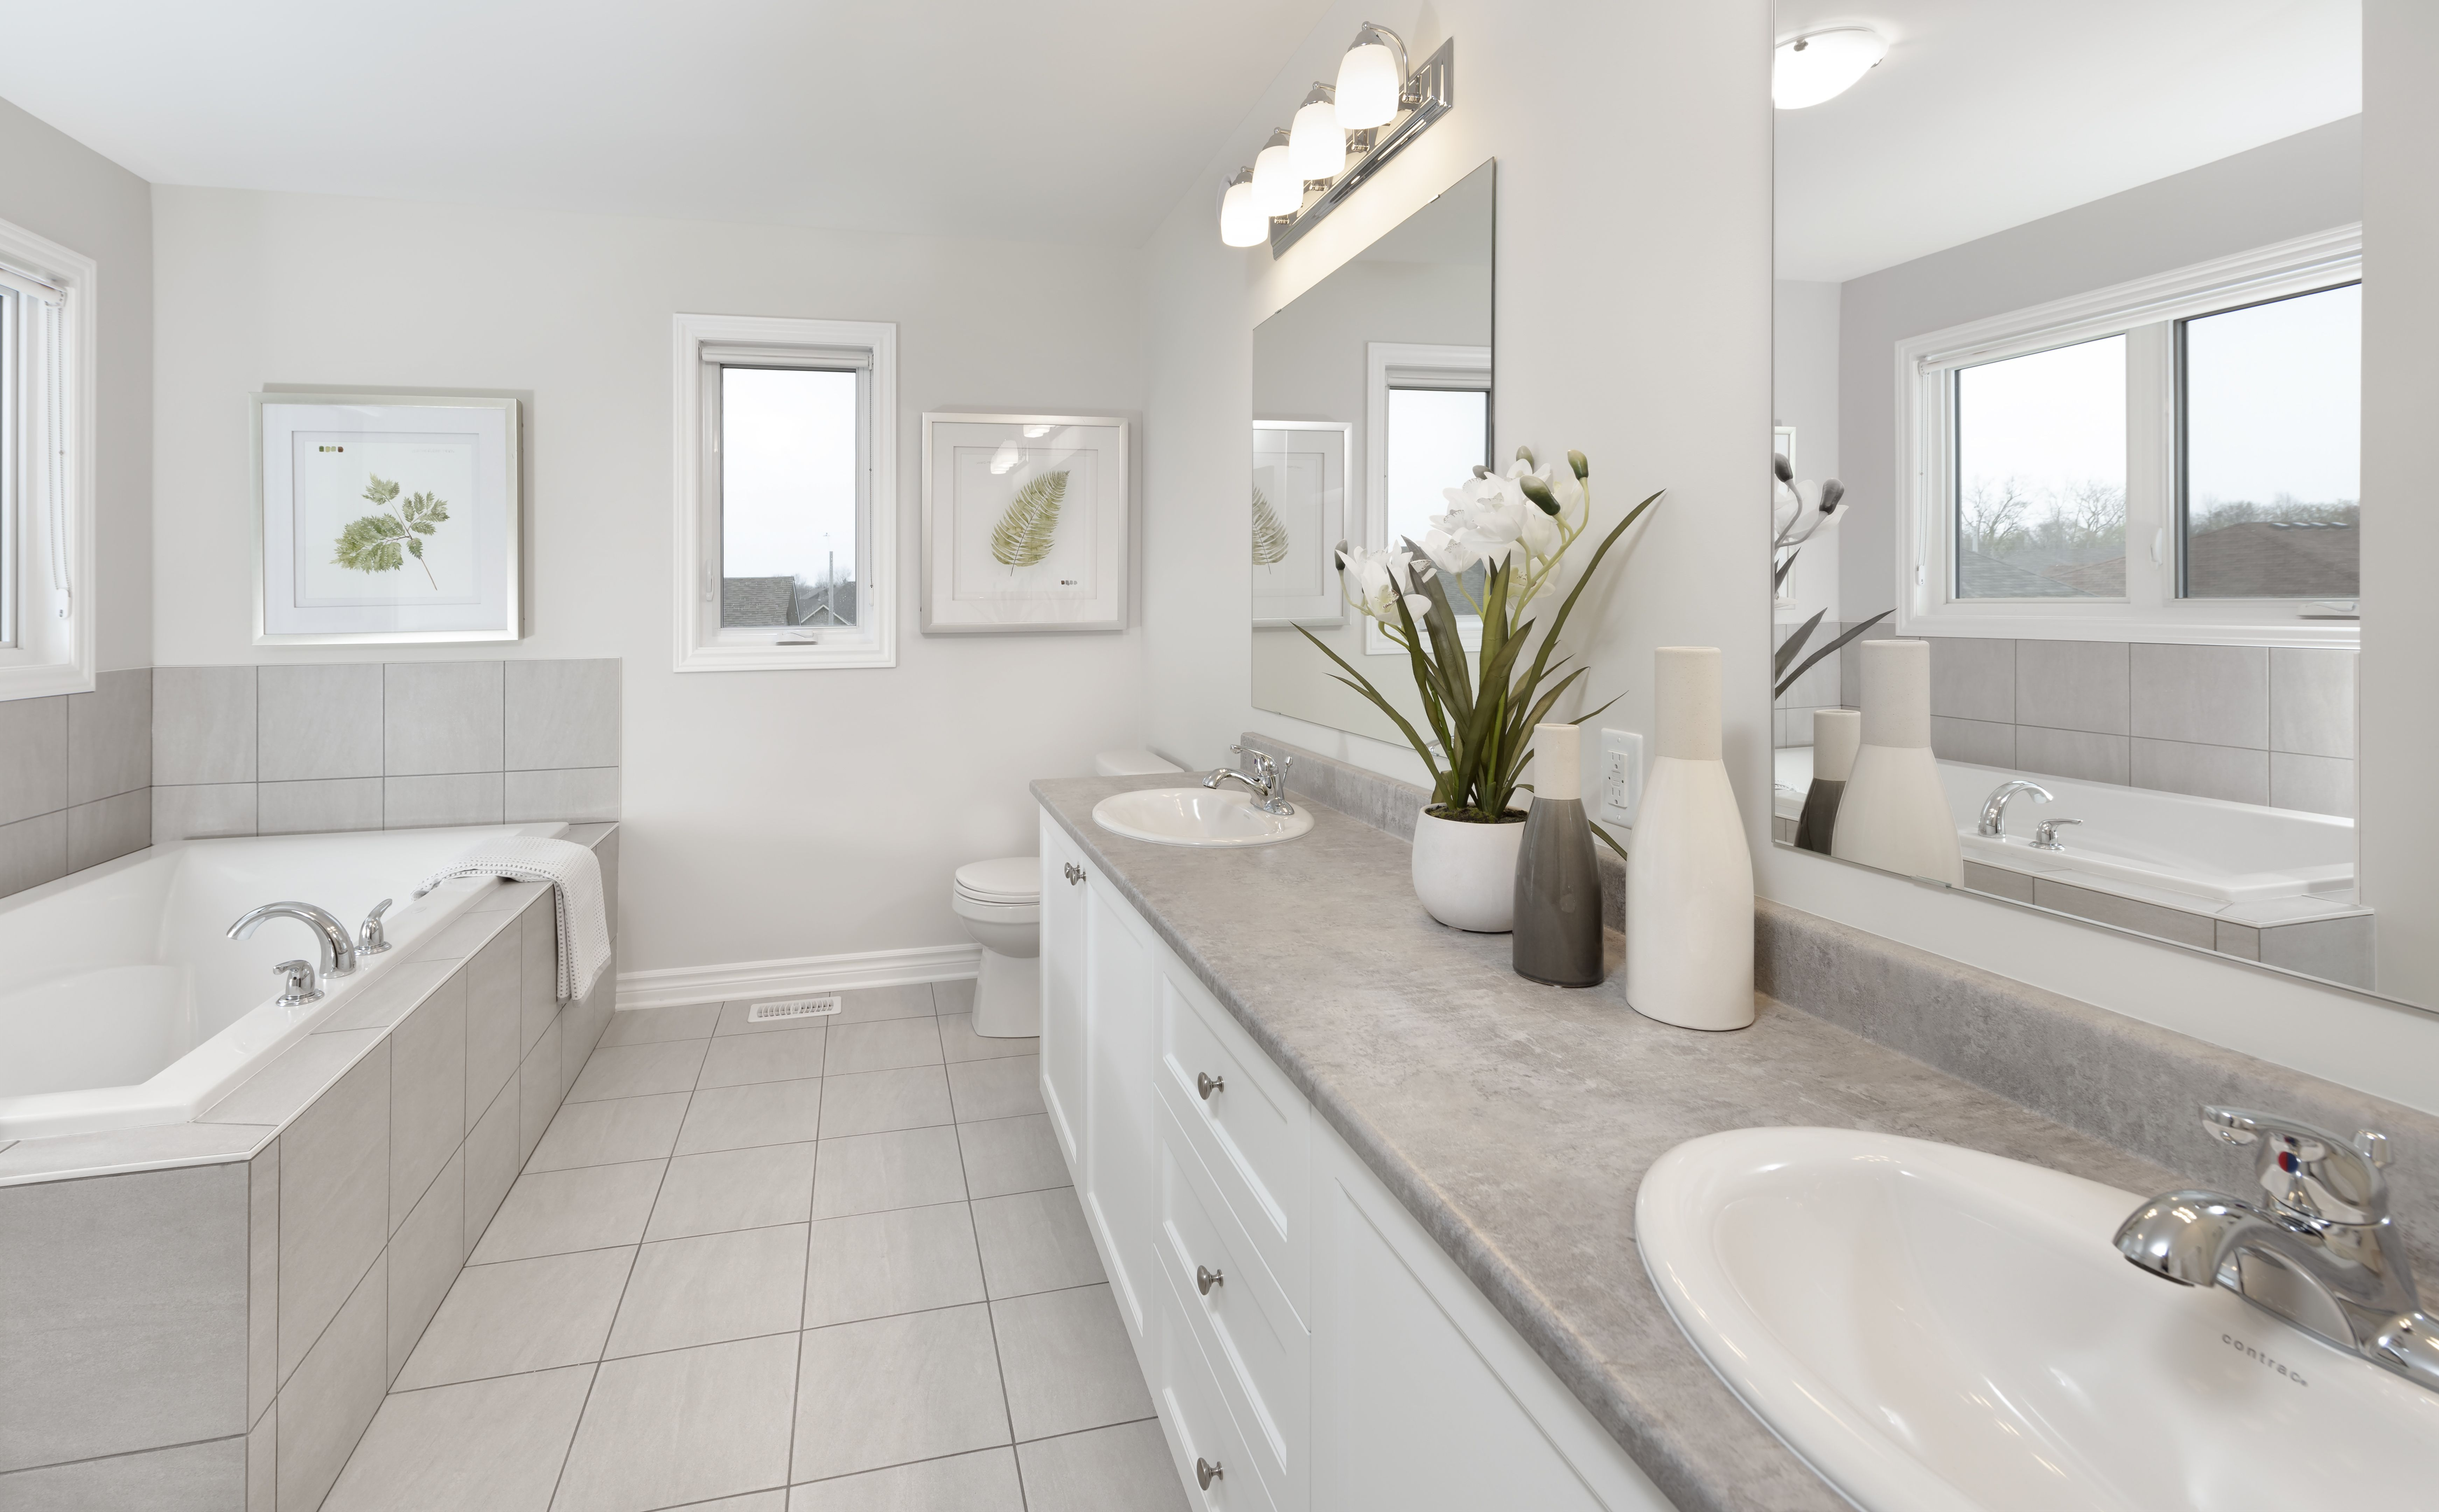 This Is The Ensuite Of The Summerhill Model Home In